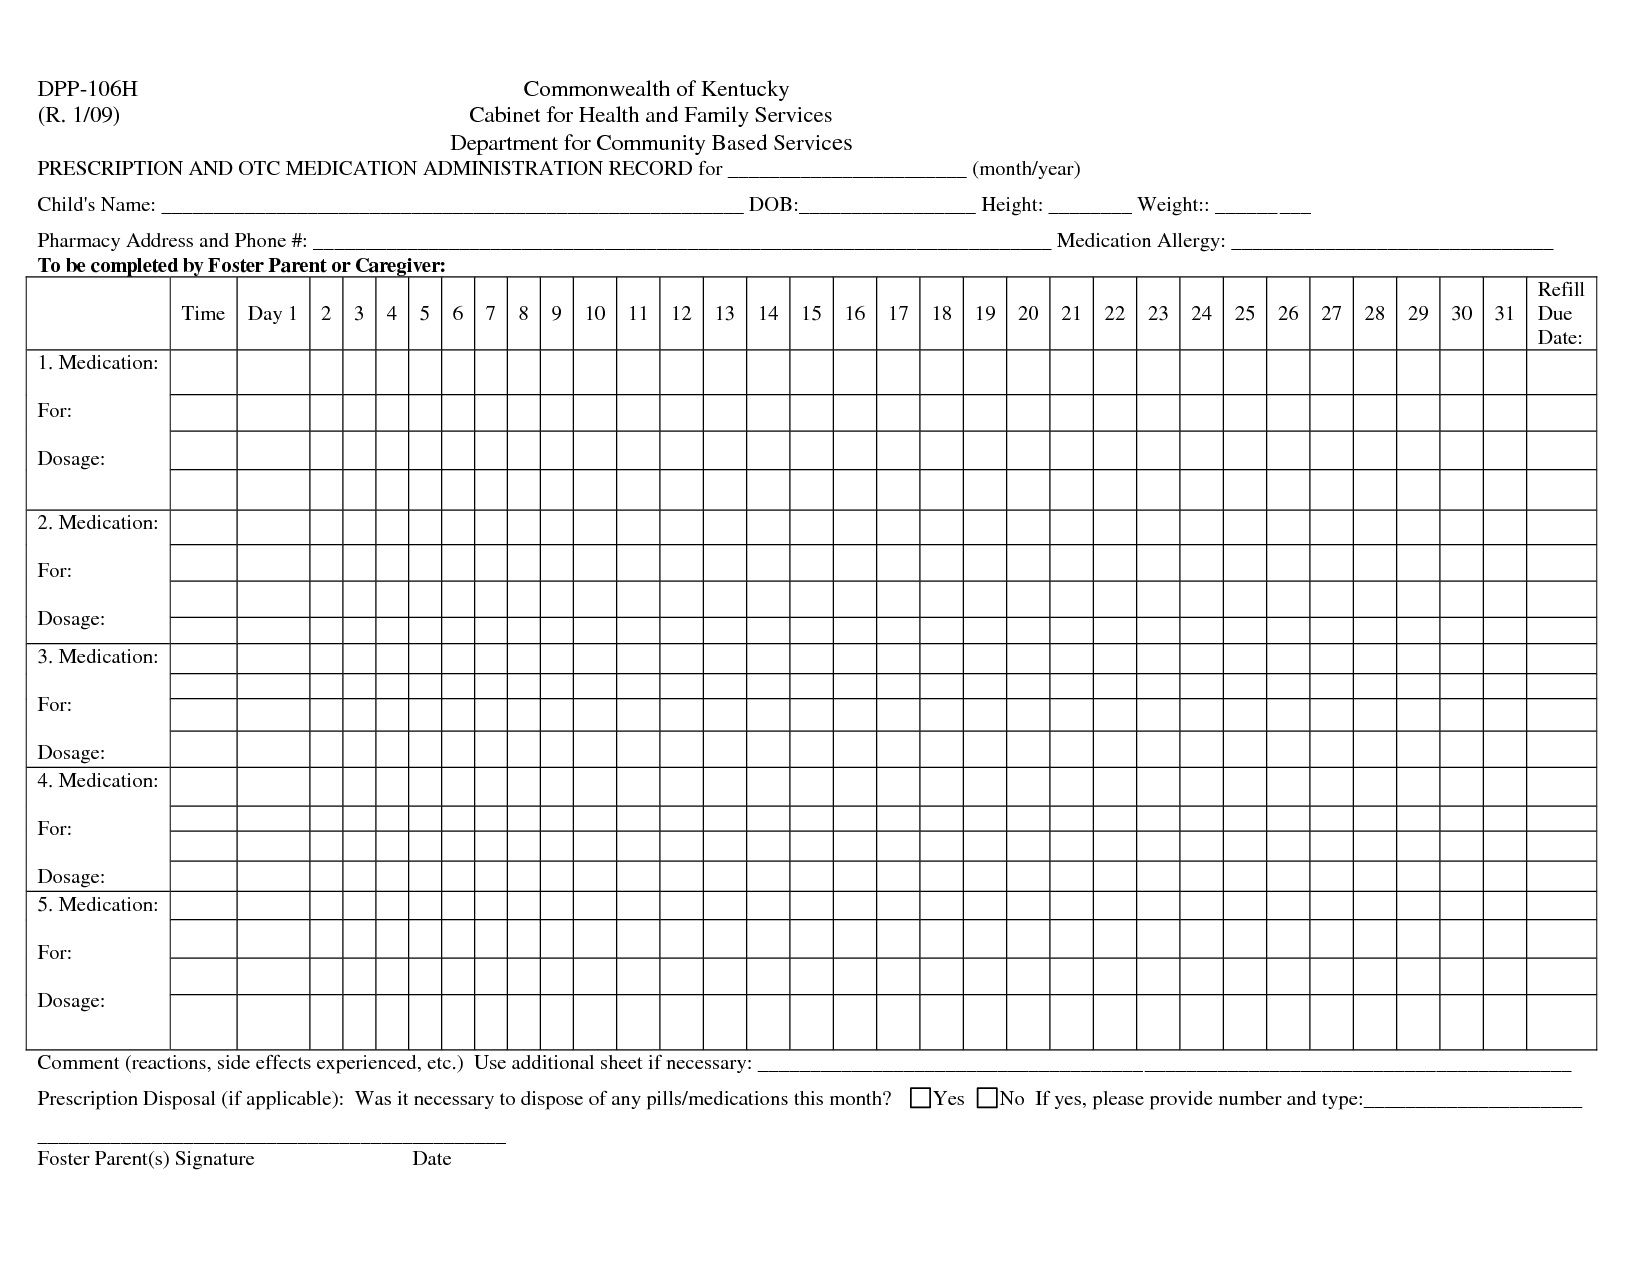 004 Awesome Medication Administration Record Template Photo  Download For Home UseFull